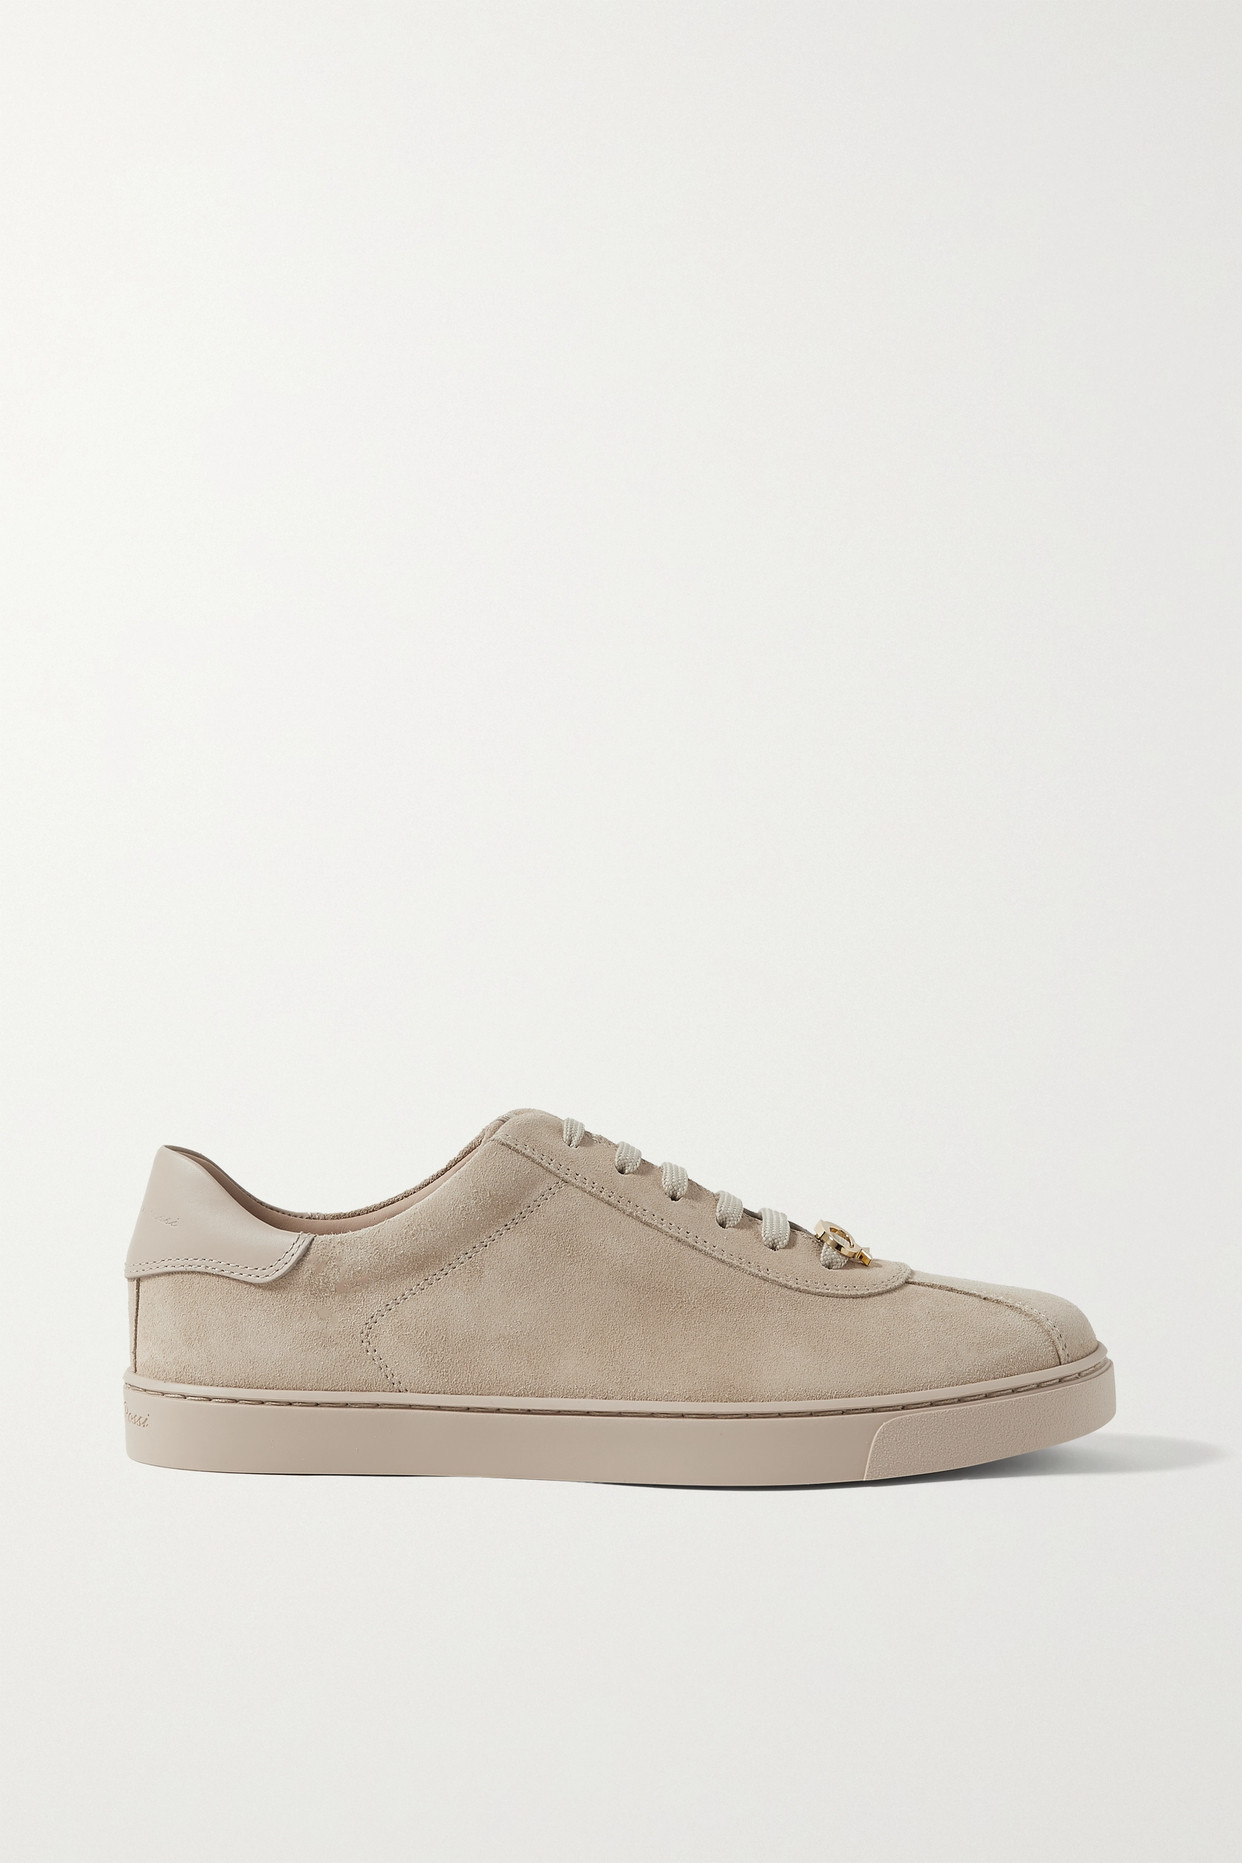 GIANVITO ROSSI - Leather-trimmed Suede Sneakers - Neutrals - IT38.5